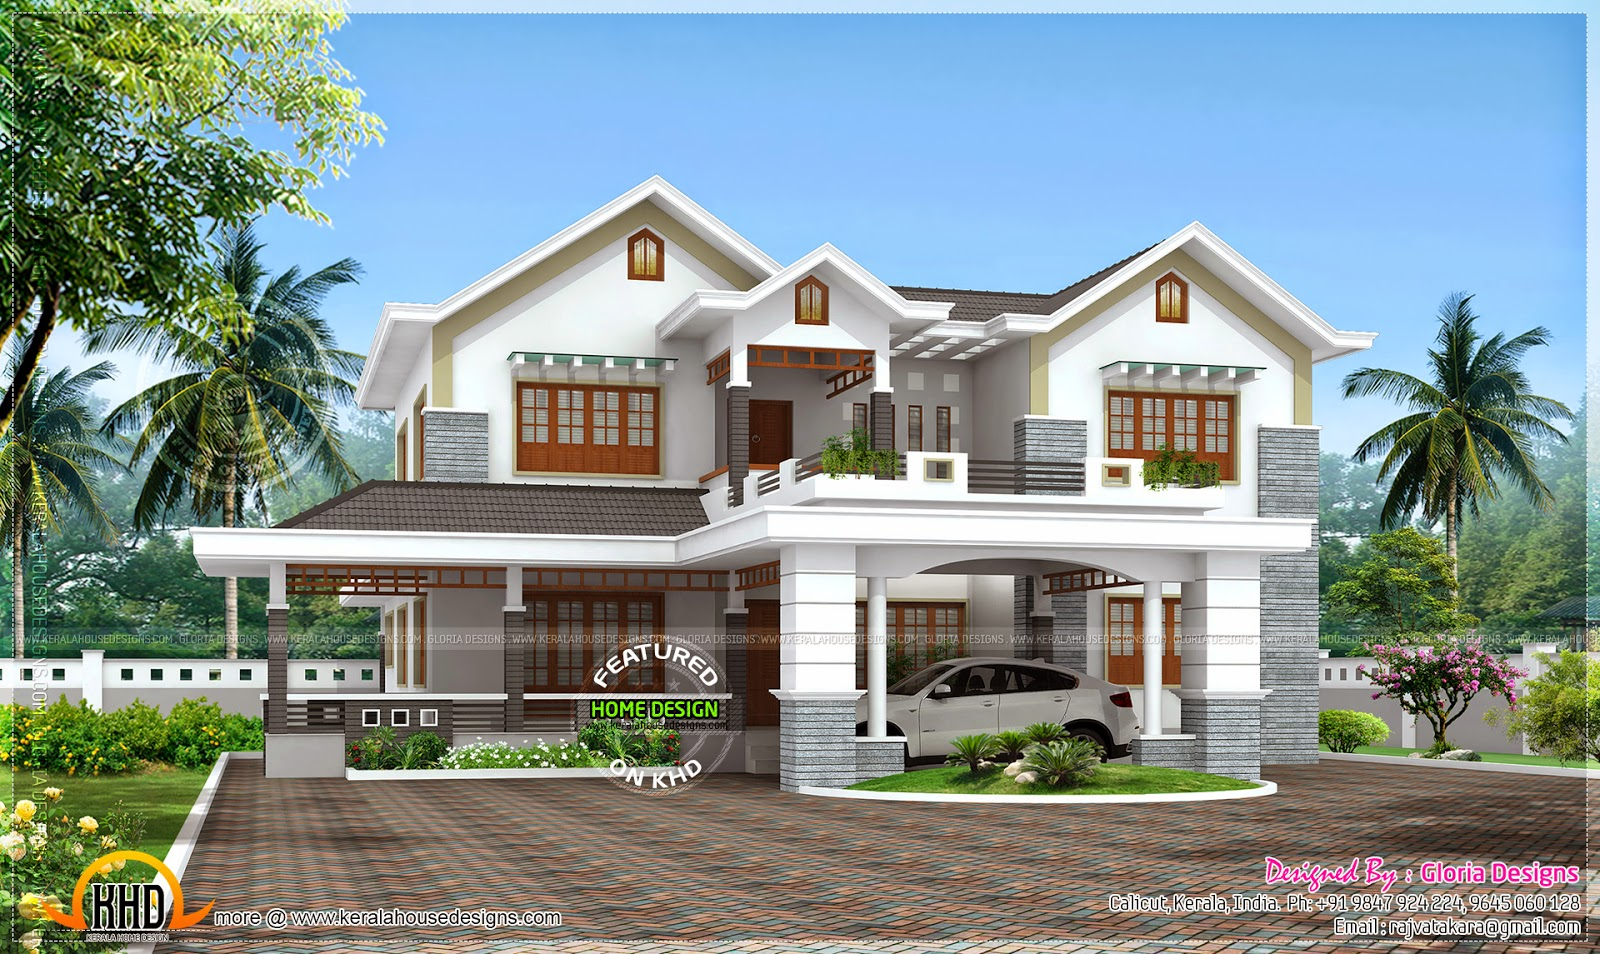 Beautiful 4 bedroom modern house kerala home design and for 4 bedroom house pictures